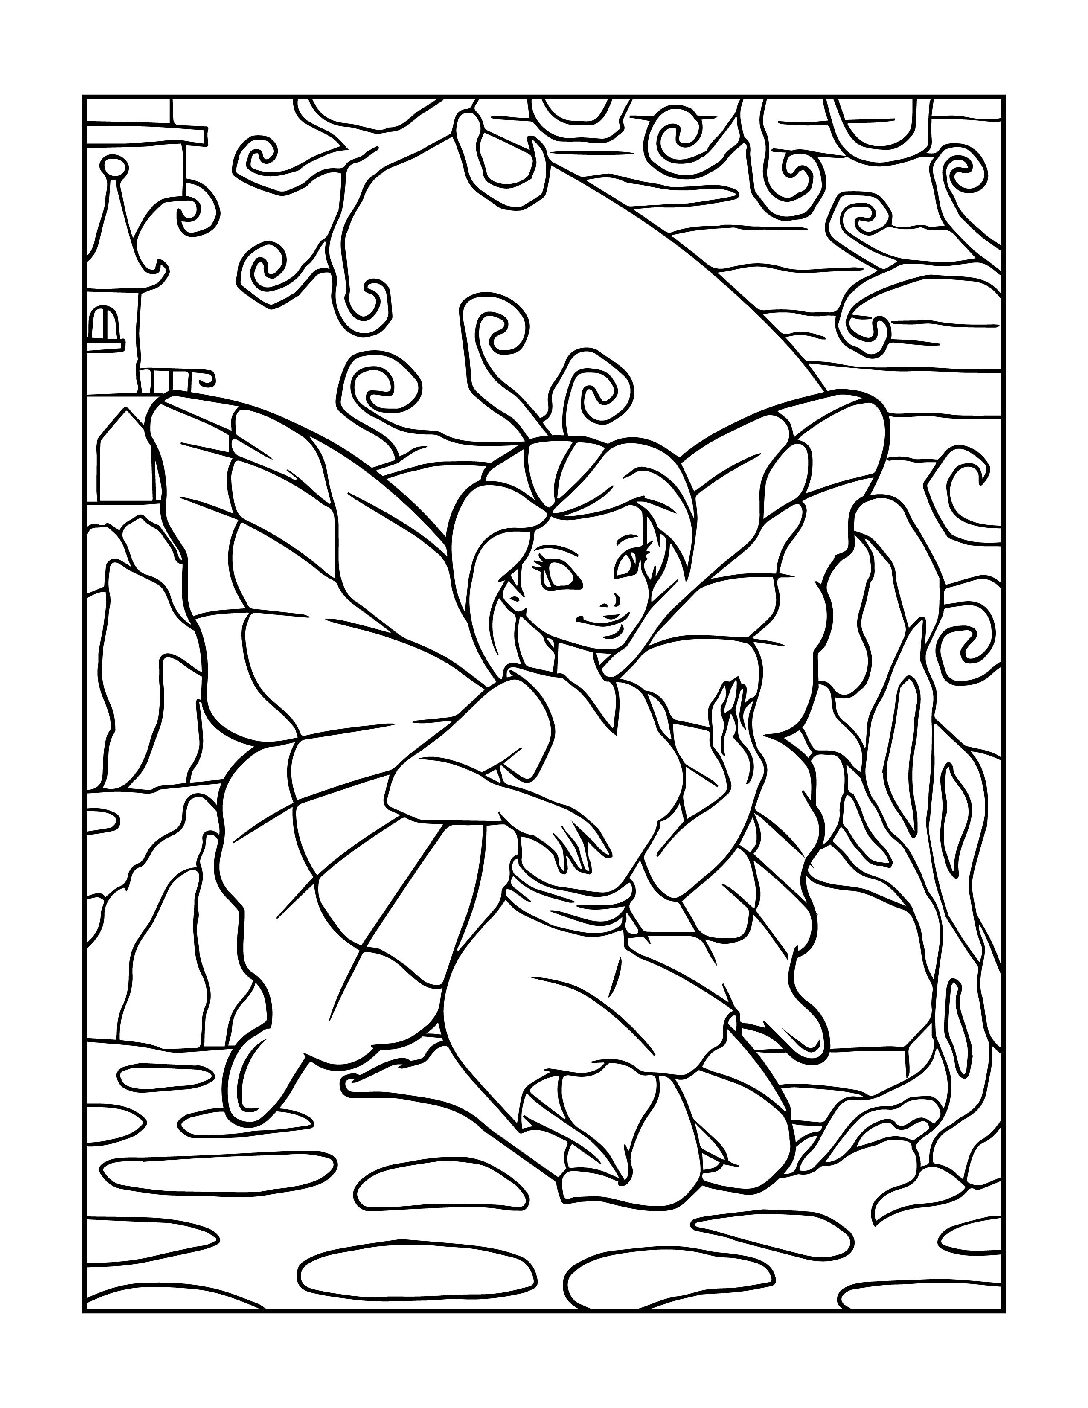 Coloring-Pages-Fairies-3-01-pdf Free Printable Fairy Colouring Pages